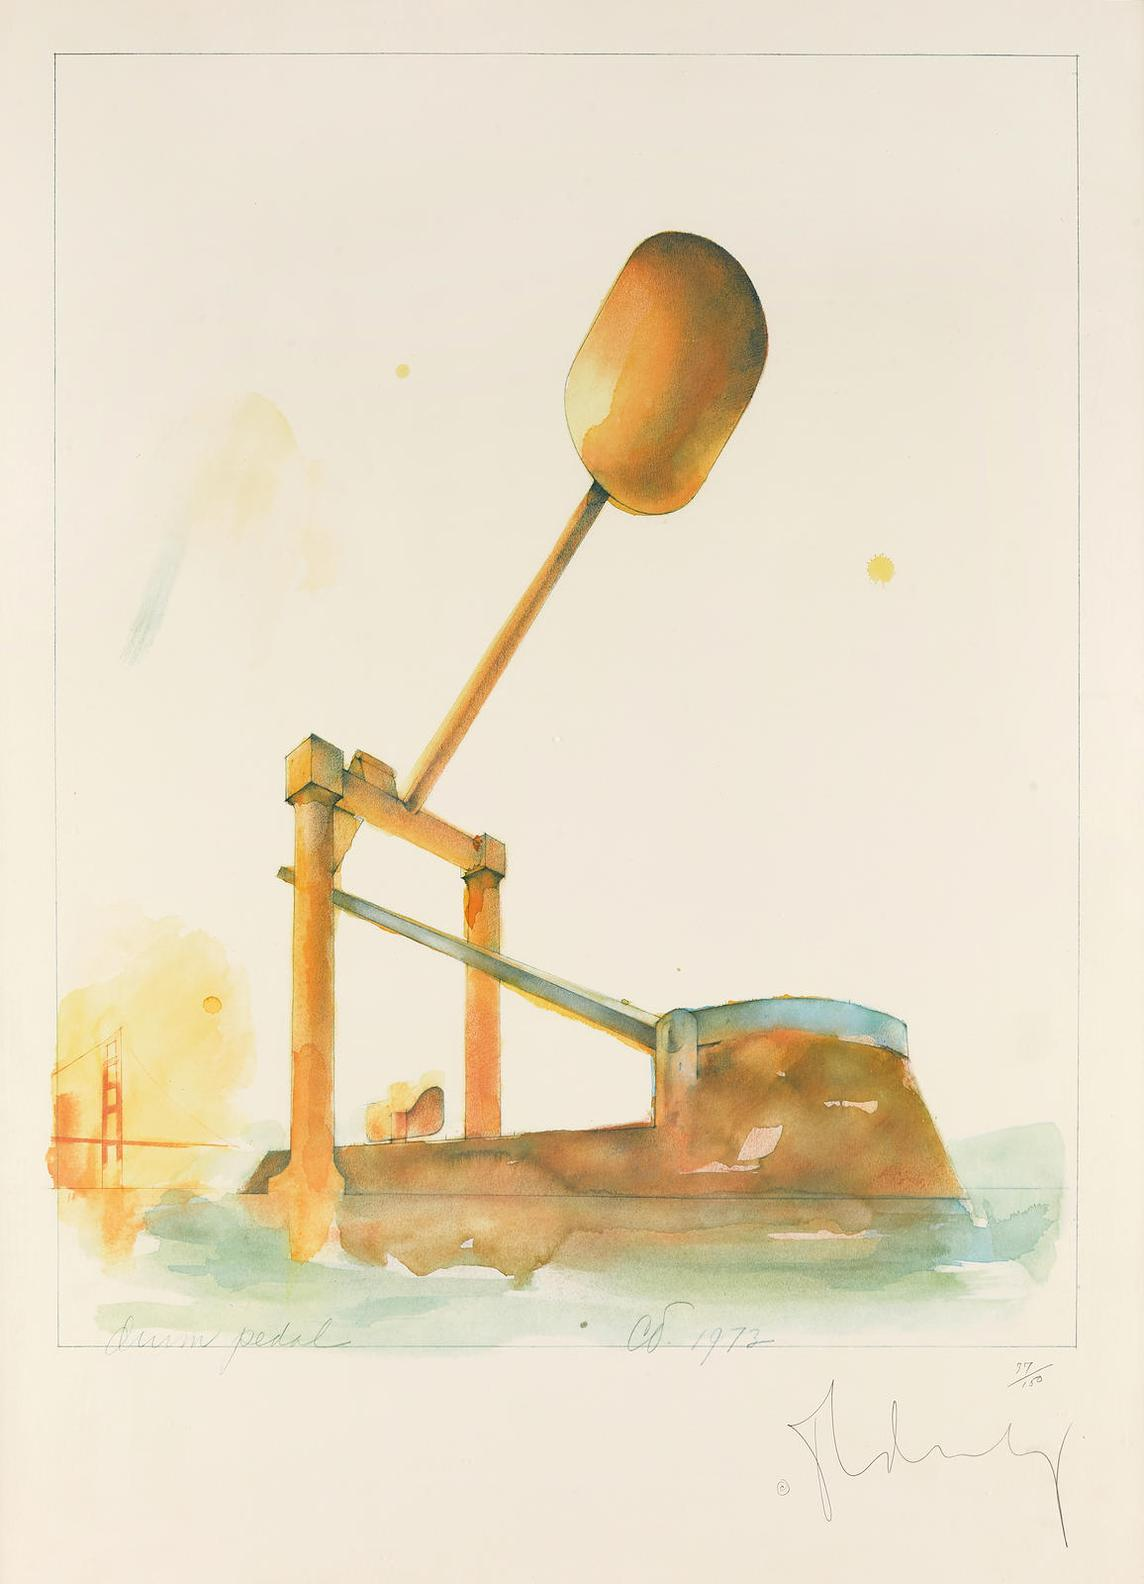 Claes Oldenburg-Proposed Colossal Monument For Alcatraz Island, San Francisco, In The Form Of A Colossal Drum Pedal, #2 (A.&P.; 112)-1973